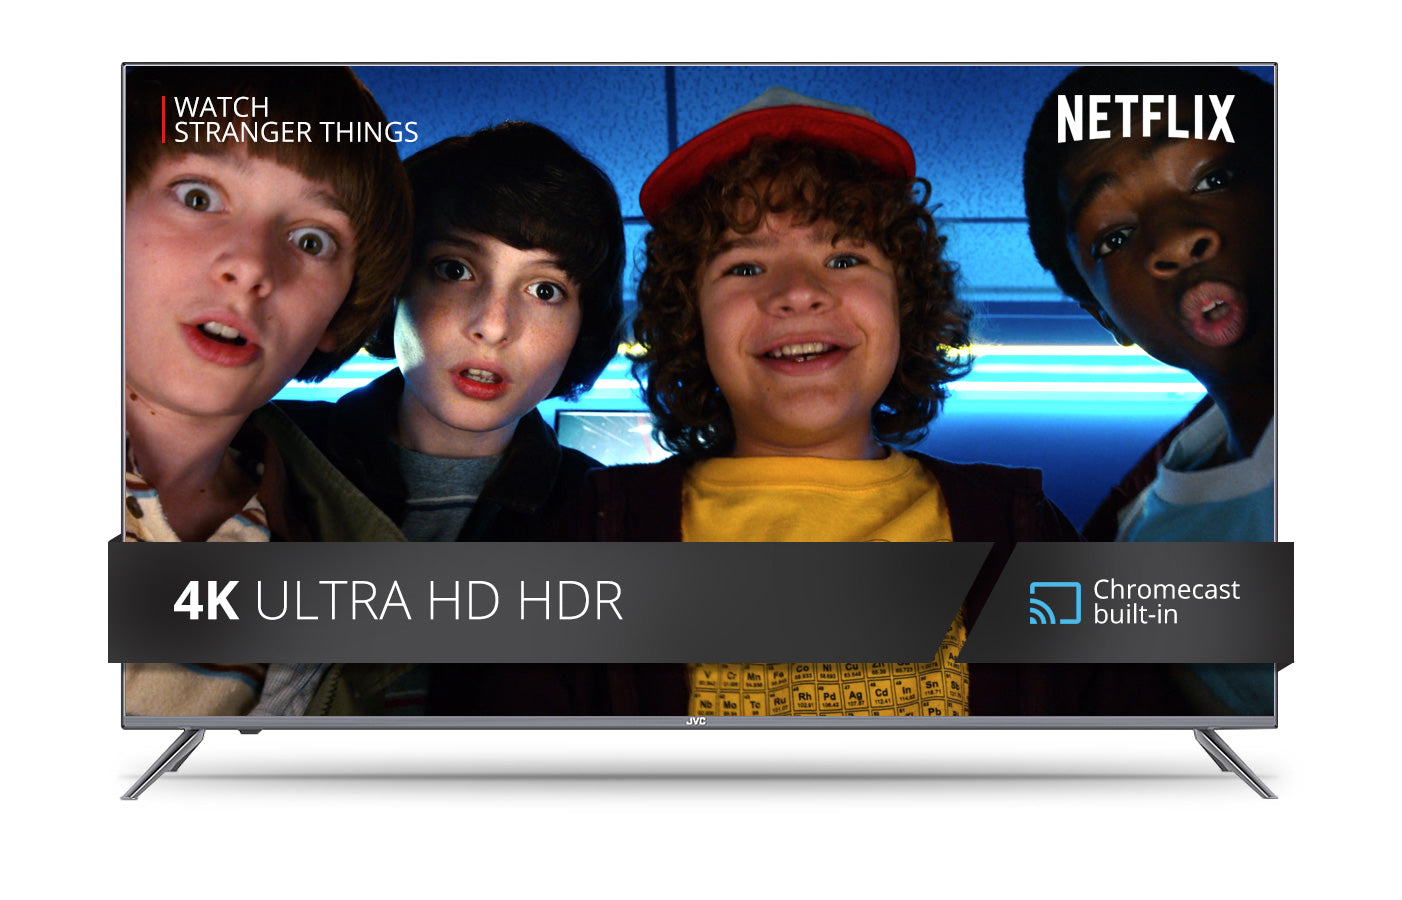 4K Ultra HD HDR Smart TV with built-in Cast - 55""